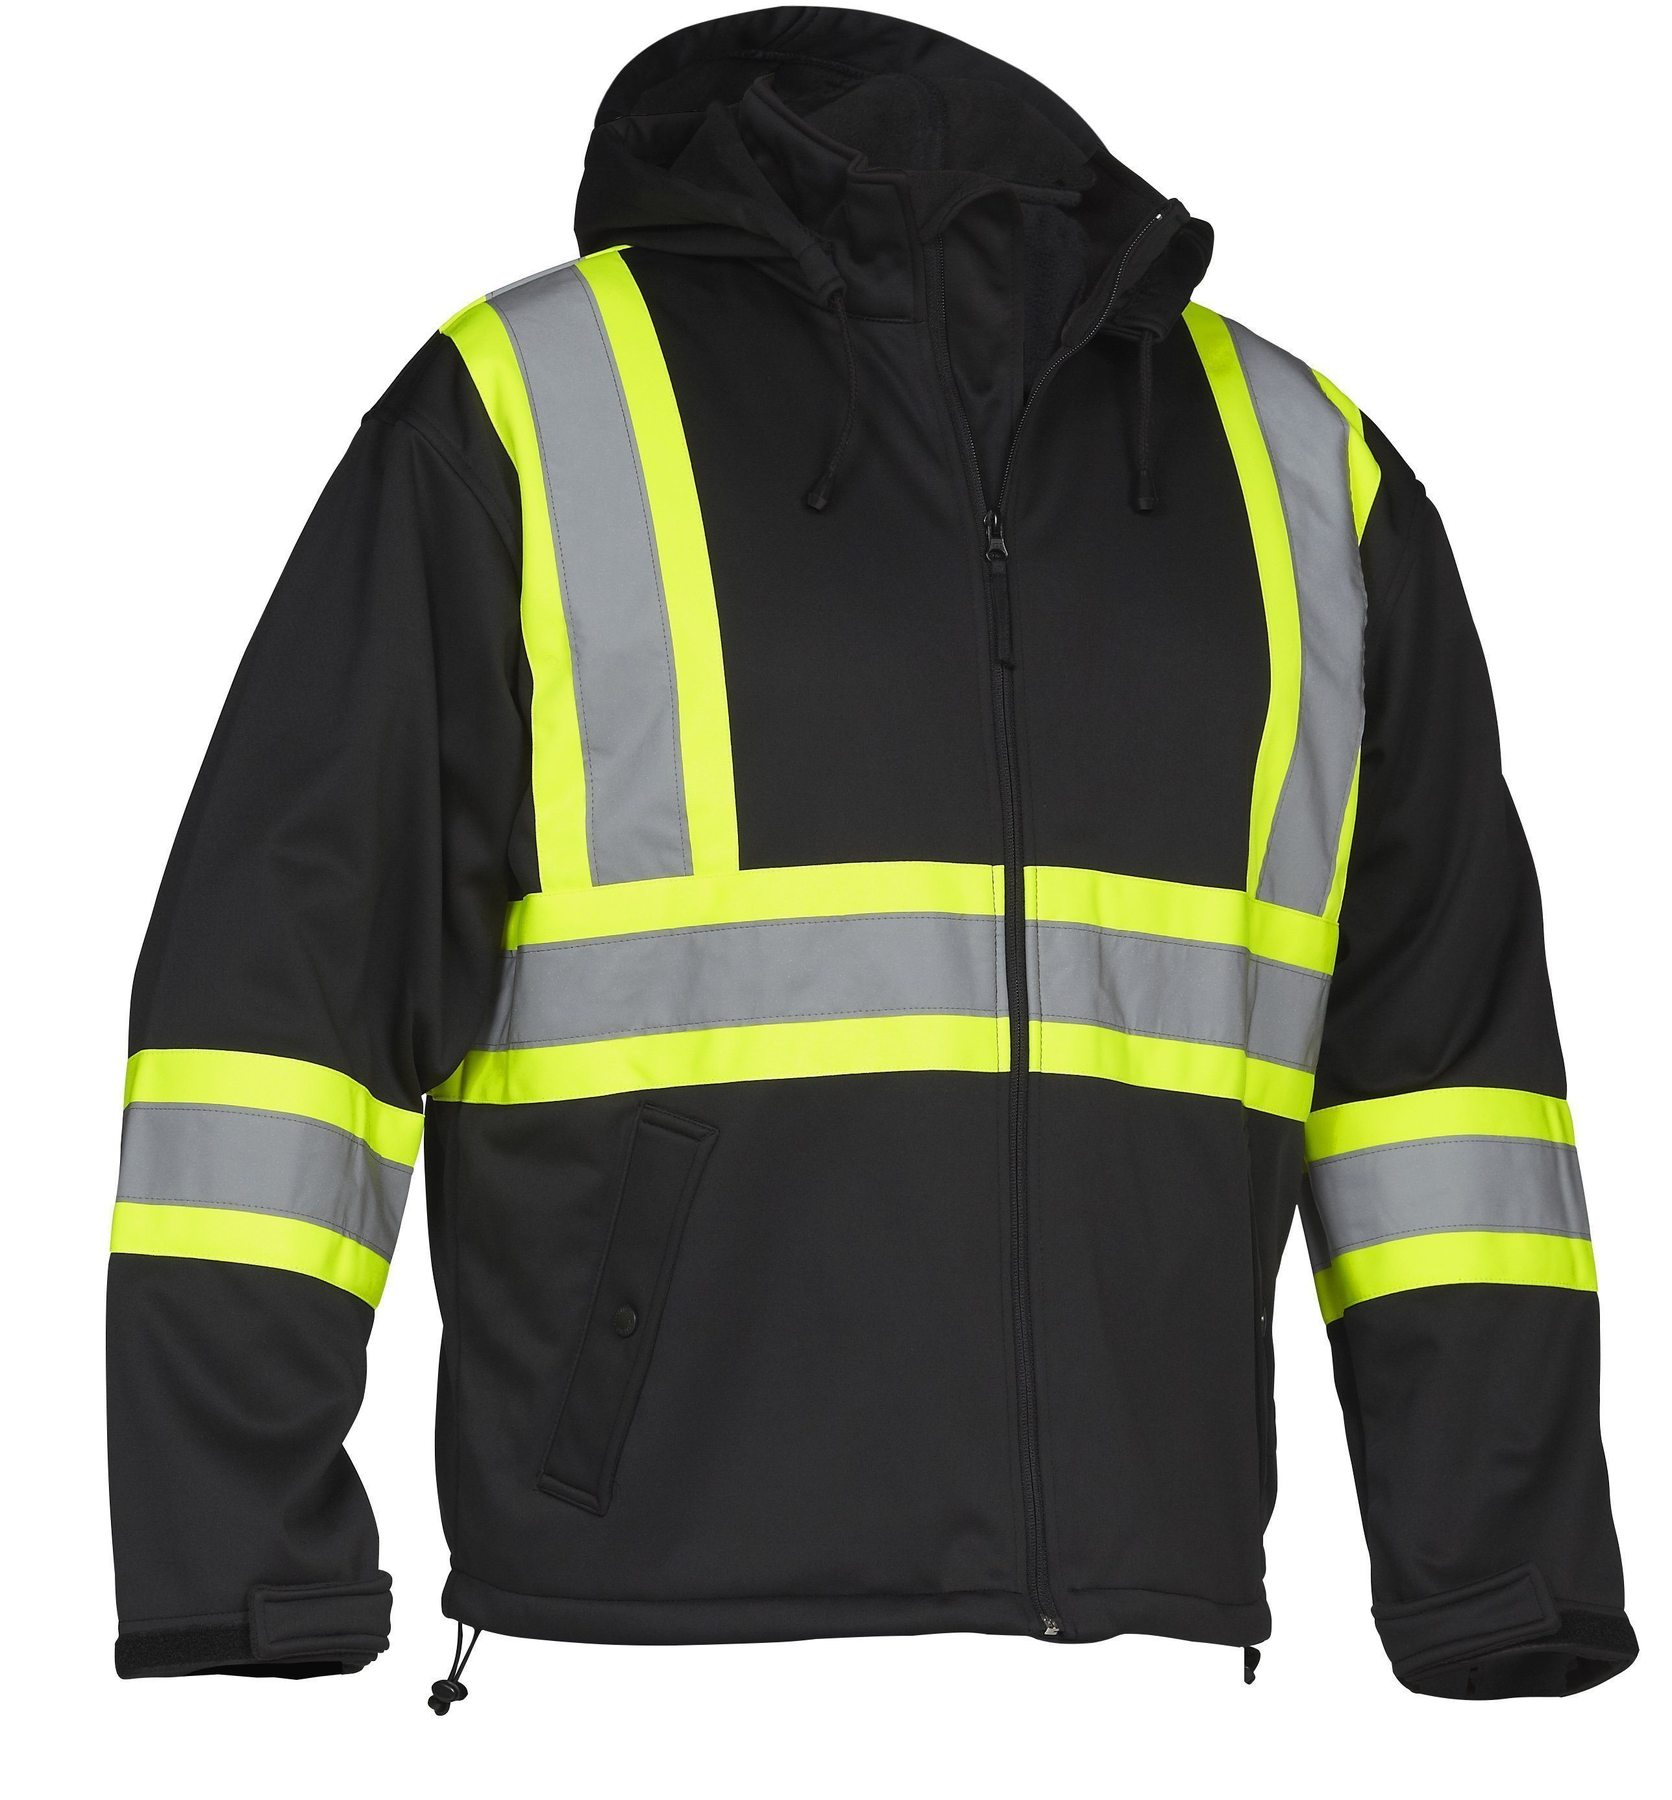 Forcefield Hi-Vis Safety Softshell Rain Jacket 023-EN147BK